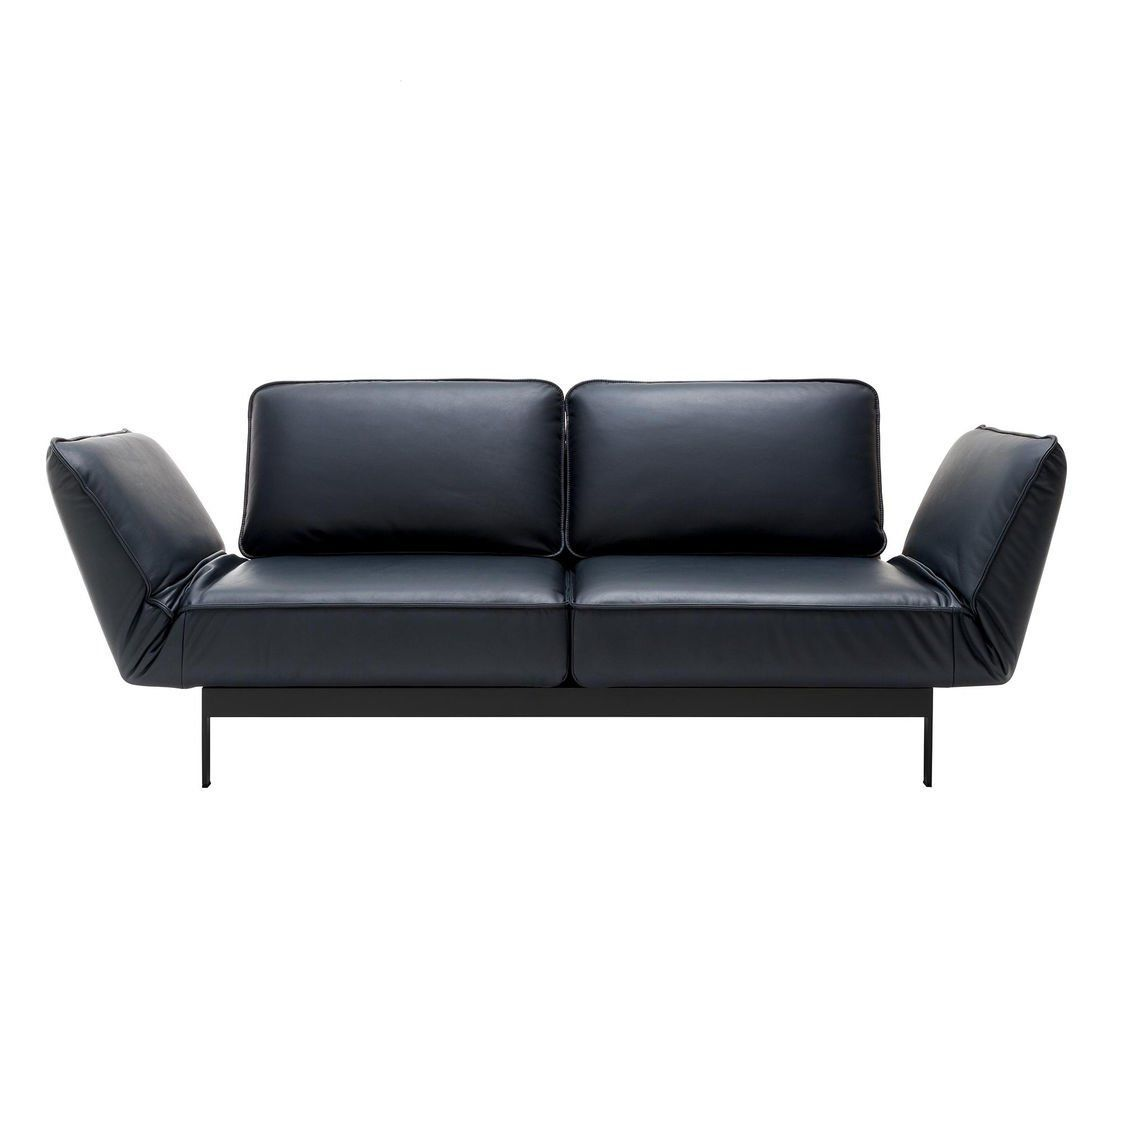 rolf benz 386 mera liegesofa rolf benz. Black Bedroom Furniture Sets. Home Design Ideas